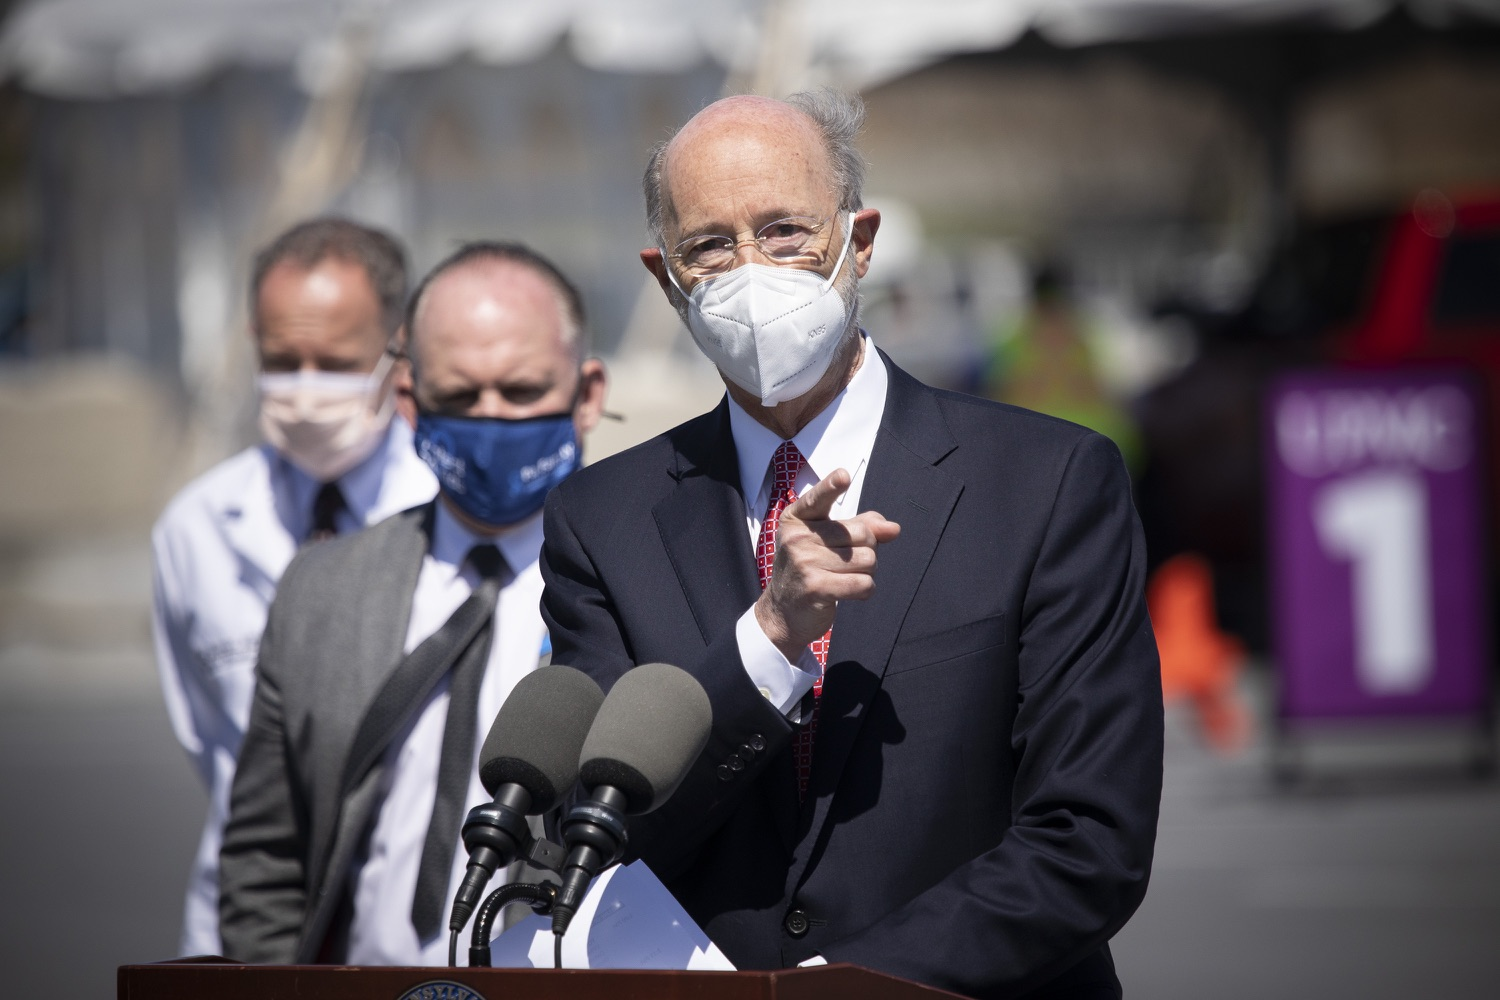 """<a href=""""https://filesource.wostreaming.net/commonwealthofpa/photo/18631_gov_hacc_vaccine_dz_001.jpg"""" target=""""_blank"""">⇣Download Photo<br></a>Pennsylvania Governor Tom Wolf speaking with the press.  Governor Wolf today visited the COVID-19 drive-thru mass vaccination clinic for Dauphin County residents at Harrisburg Area Community College. The drive-thru clinic was developed in partnership with UPMC Pinnacle and Dauphin County. He was joined by UPMC Pinnacle President Phil Guarneschelli and Dauphin County Commissioners Mike Pries and George P. Hartwick III.  HARRISBURG, PA -- March 30, 2021"""